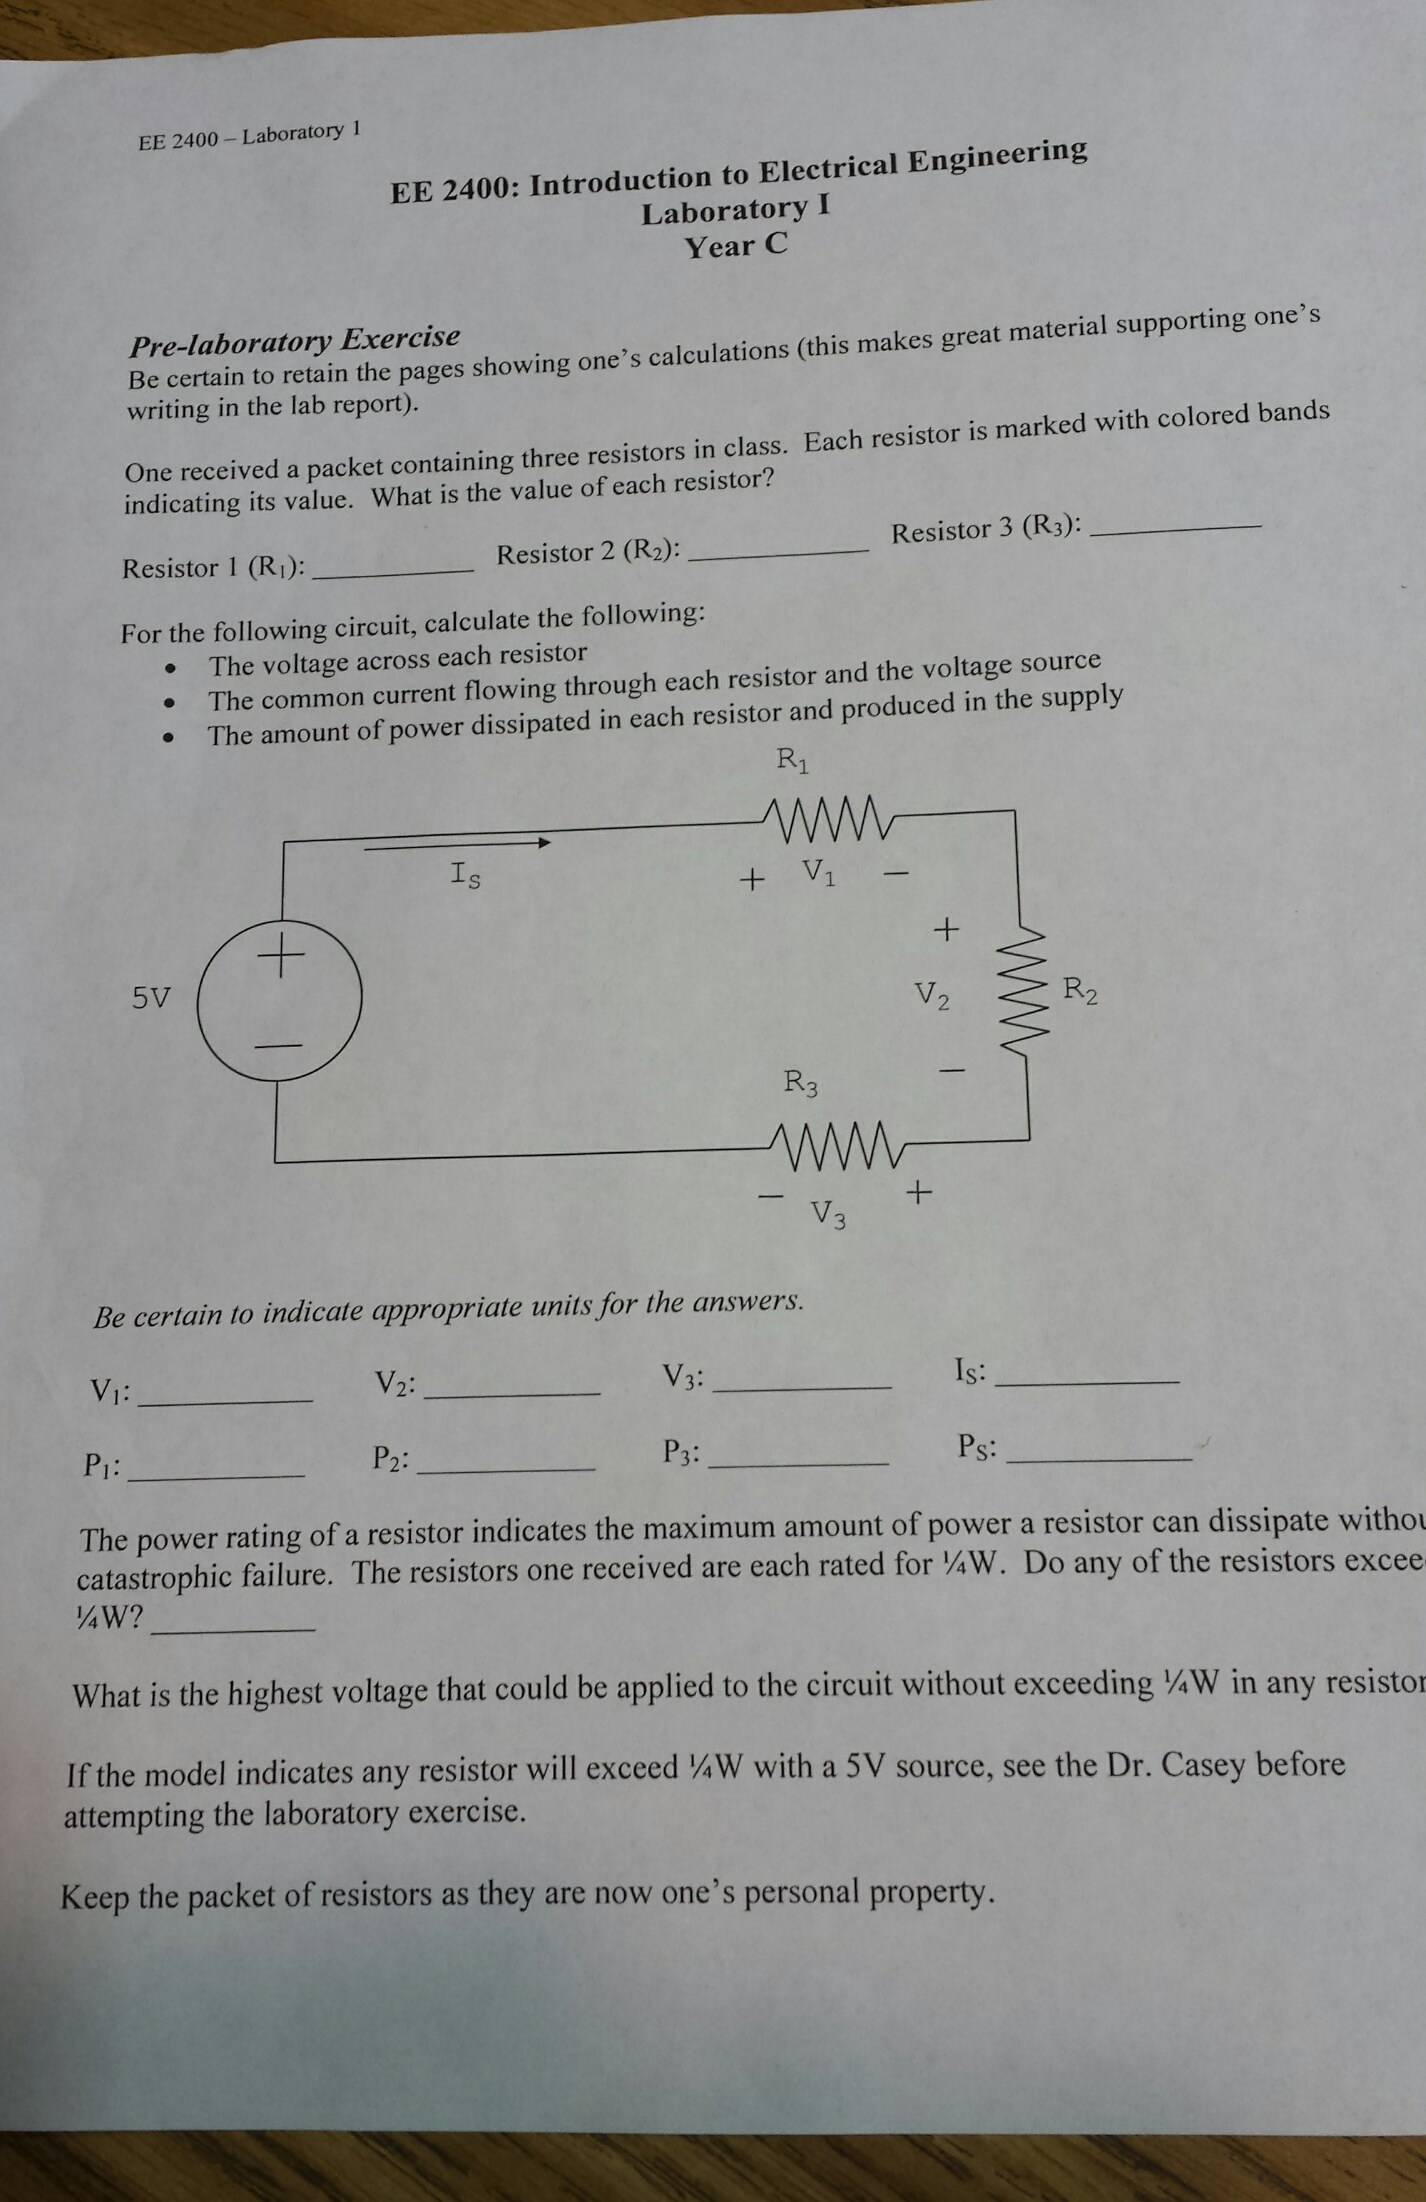 Could anyone help me to do LAB REPORT for EE 2400?